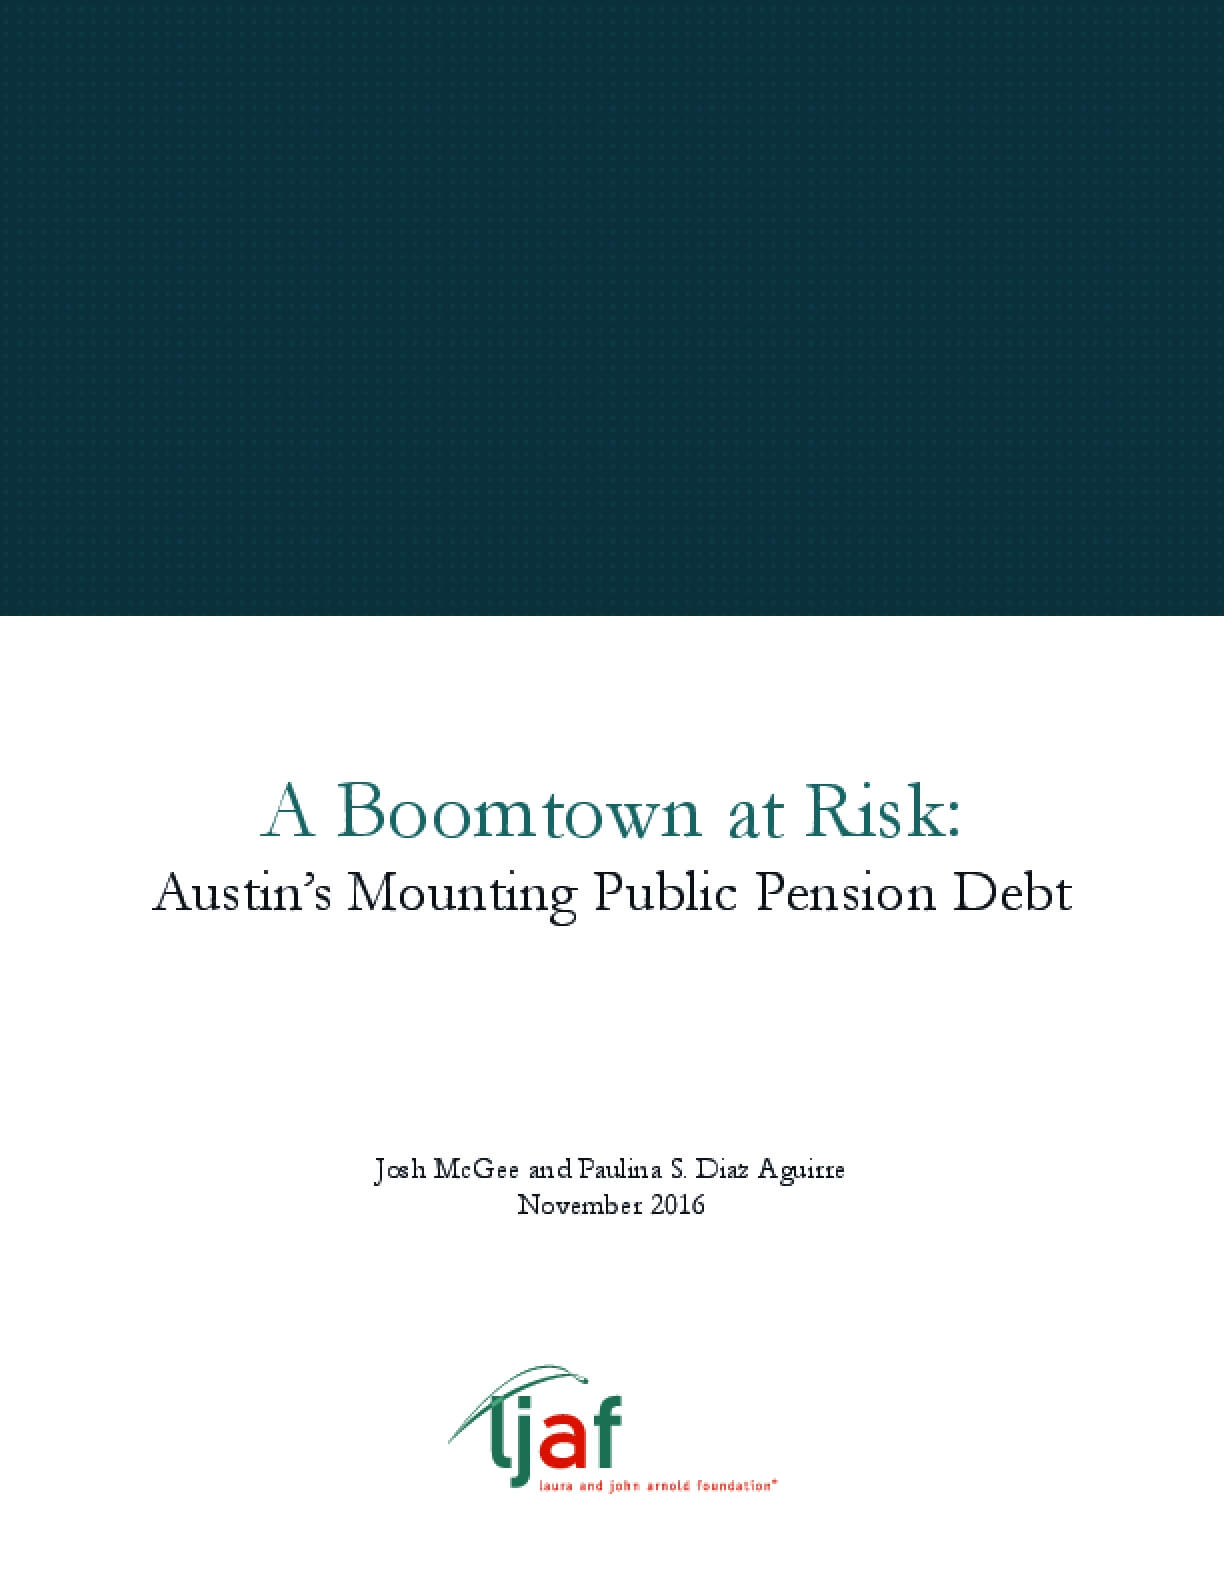 A Boomtown at Risk: Austin's Mounting Public Pension Debt